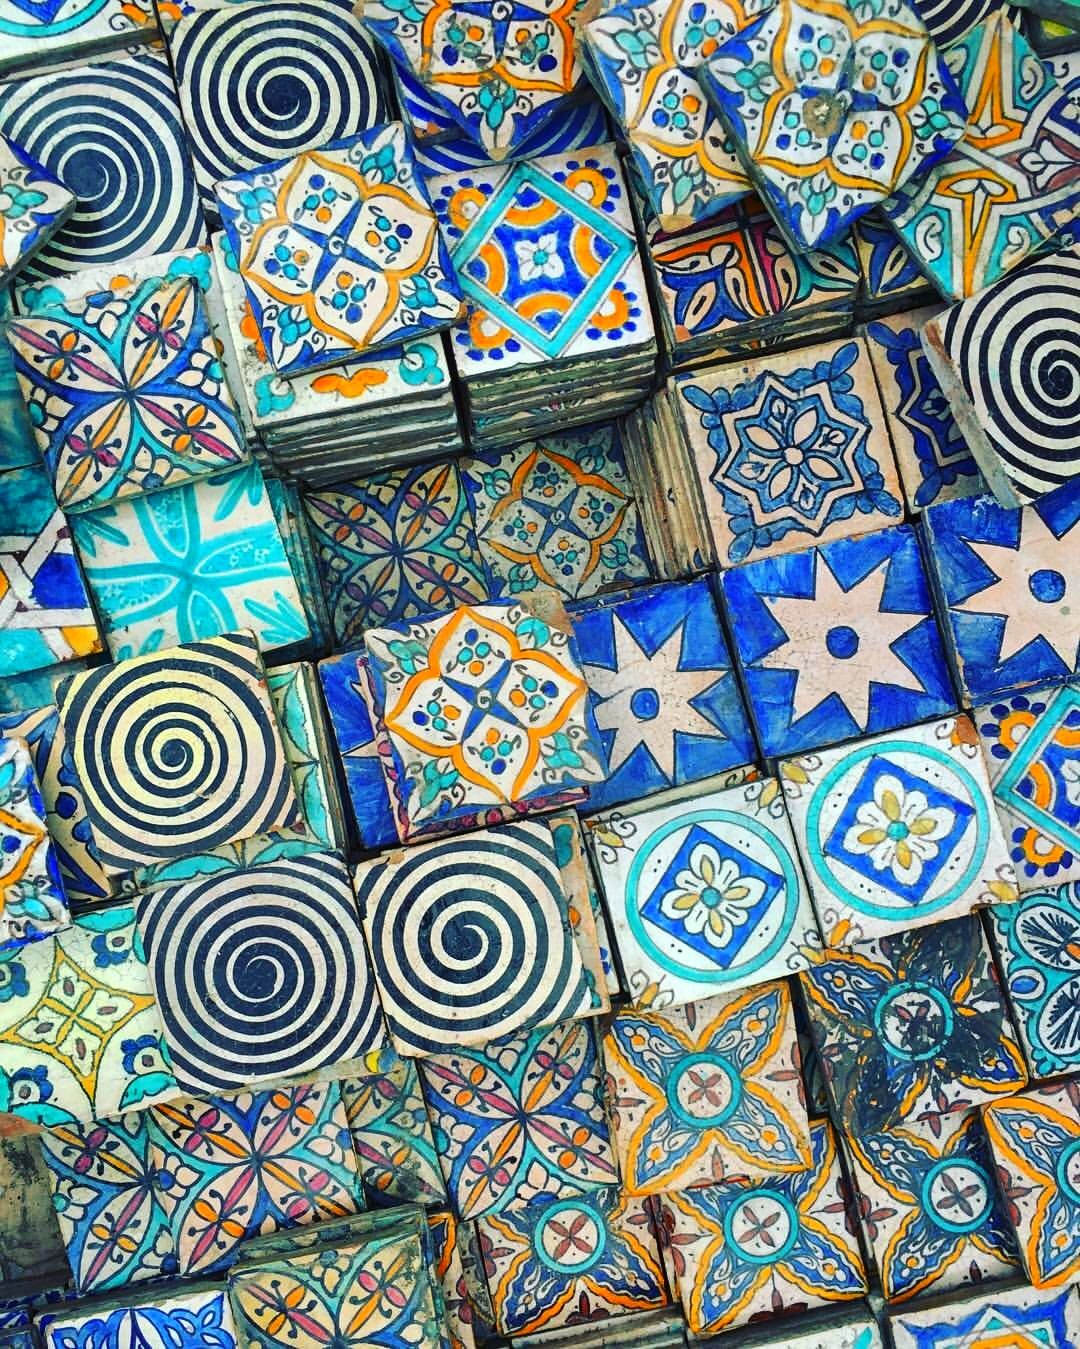 Moroccan Design Ideas Moroccan Tiles The Latest In Bohemian Fashion These